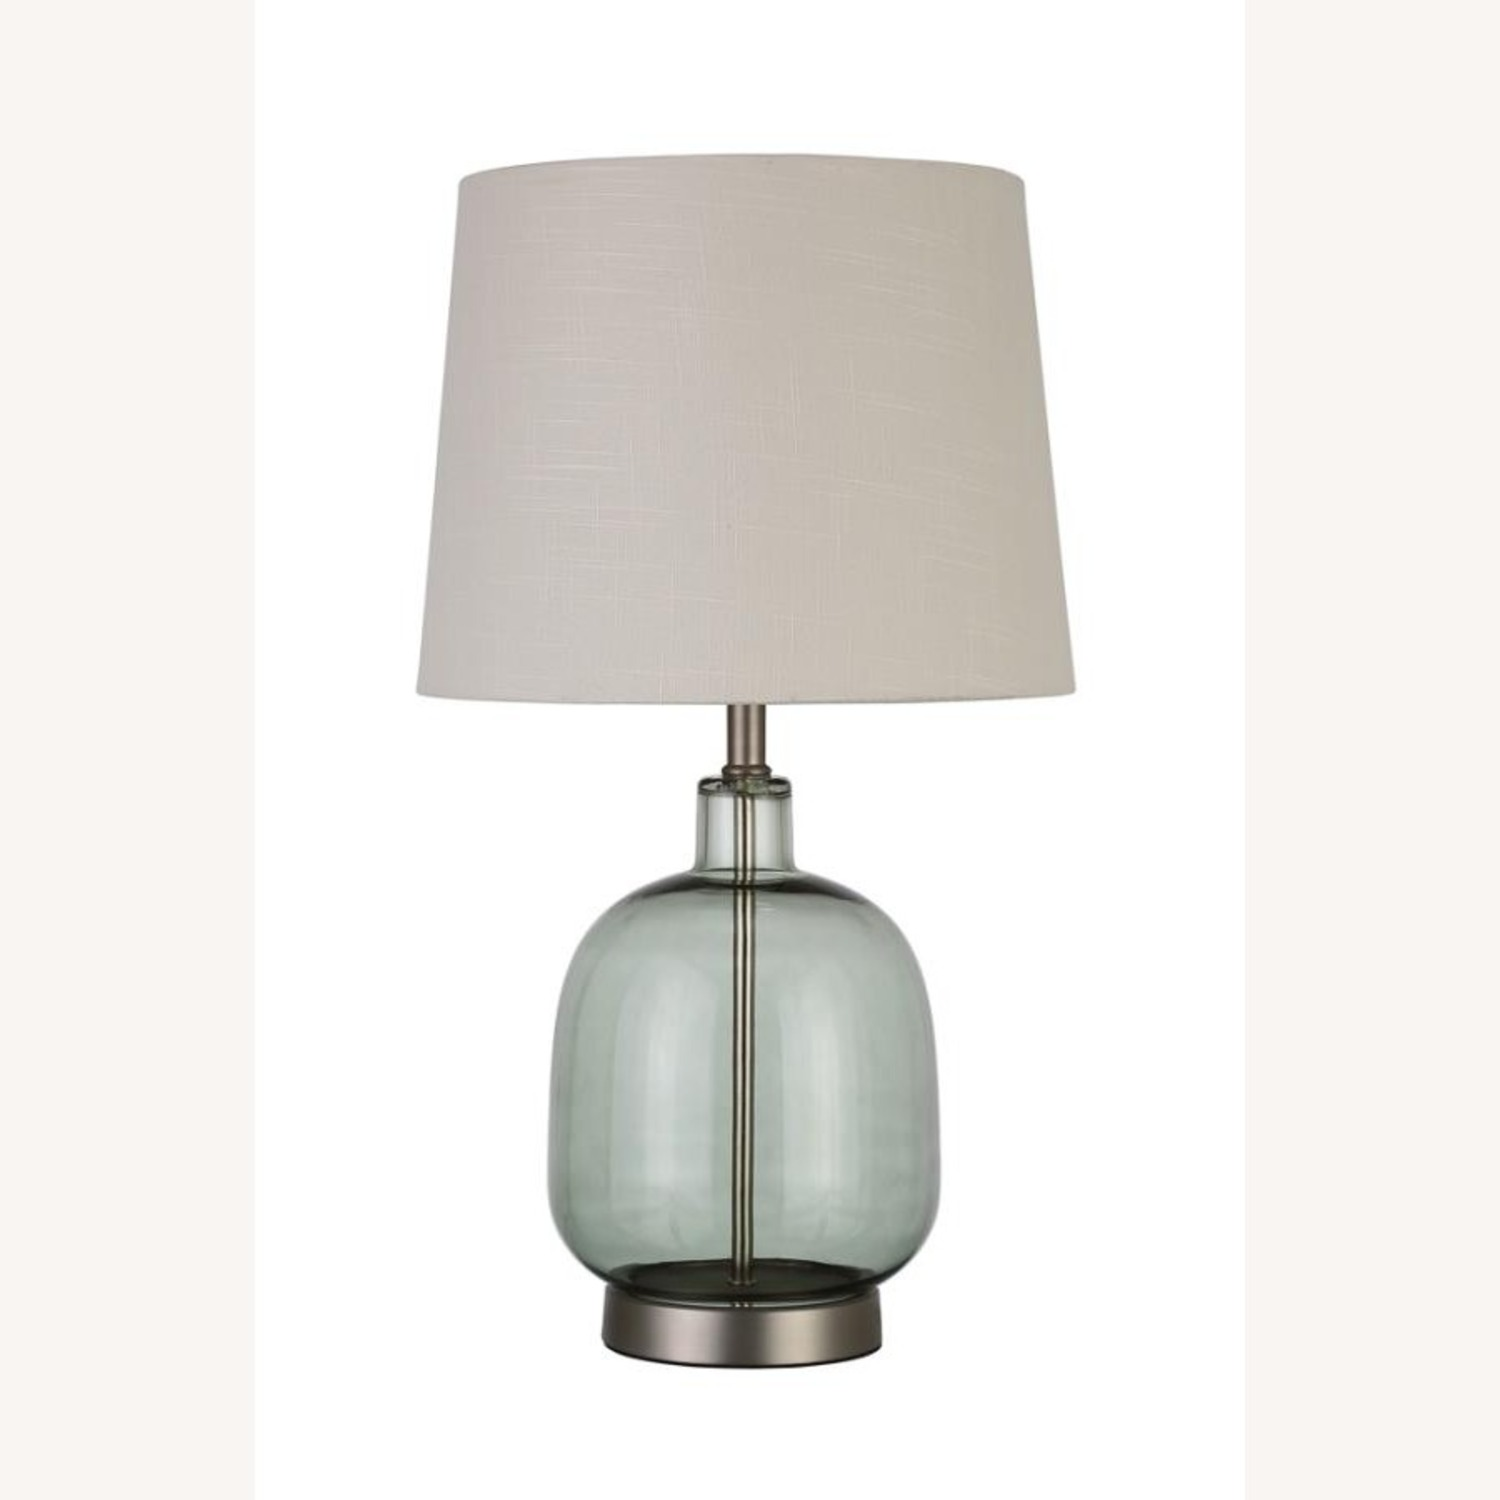 Table Lamp In Transparent Green Glass Body - image-1